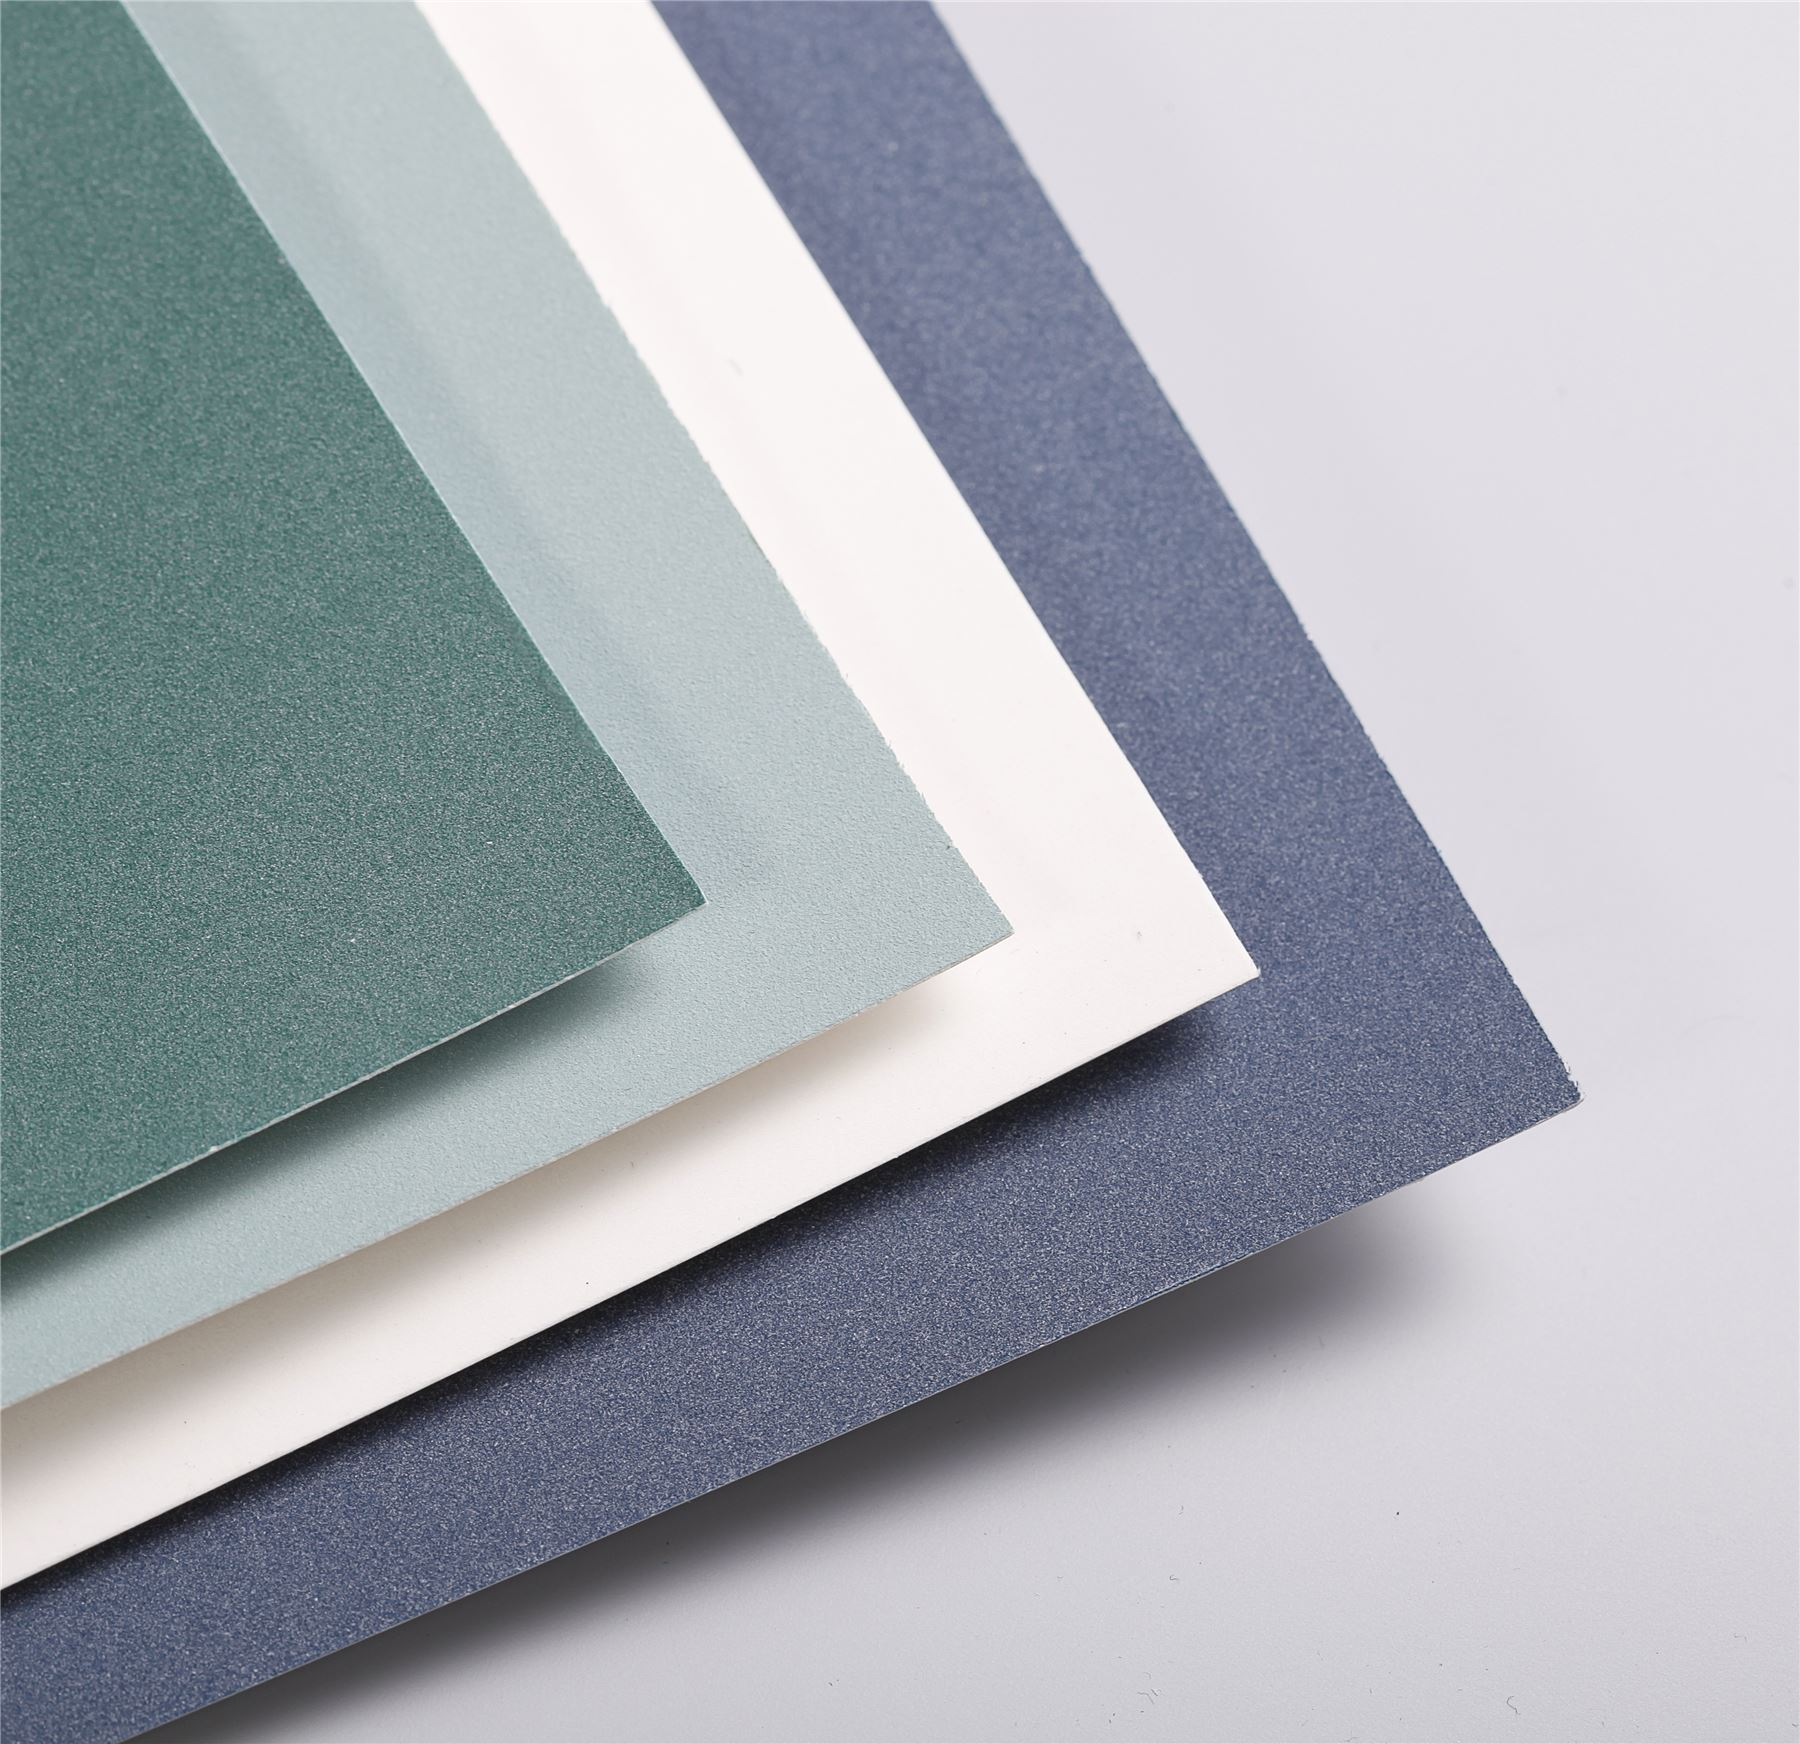 Clairefontaine-PastelMat-Pads-6-pad-choices-in-assorted-colours-amp-sizes thumbnail 30